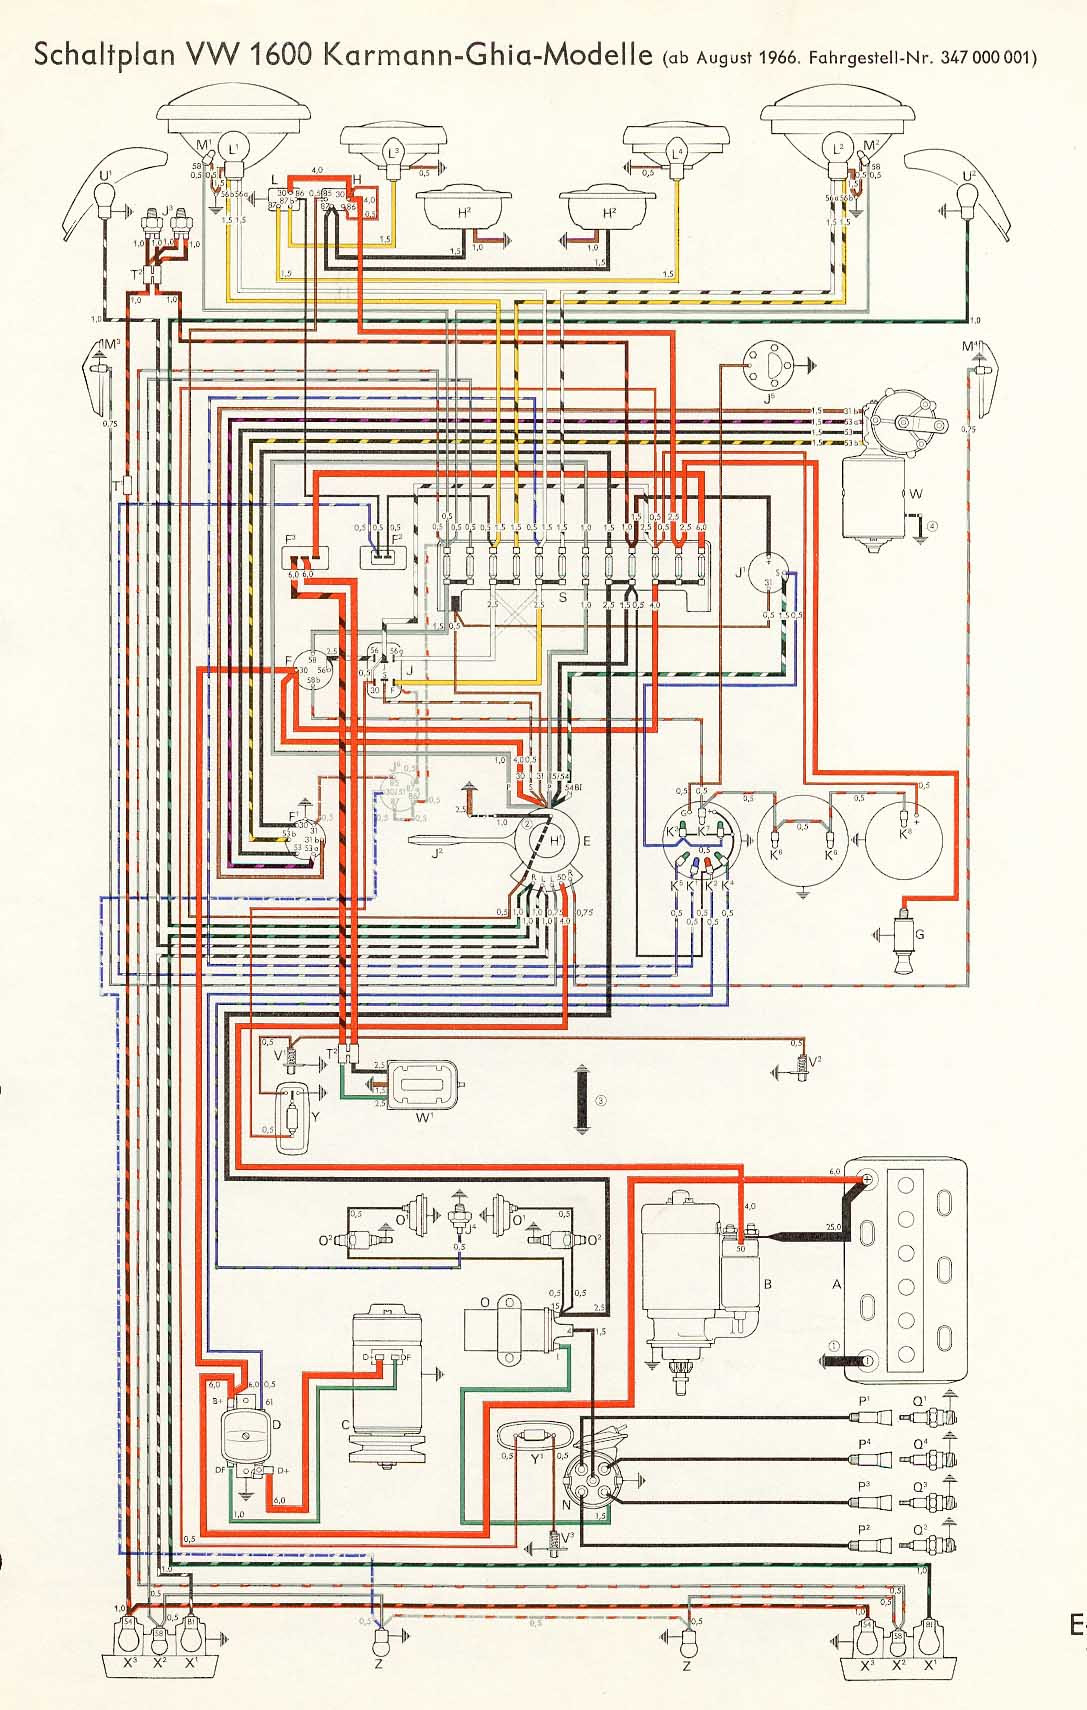 Diagram In Pictures Database 1970 Vw Turn Signal Wiring Diagram Just Download Or Read Wiring Diagram Rob Thurman Flow Chart Onyxum Com